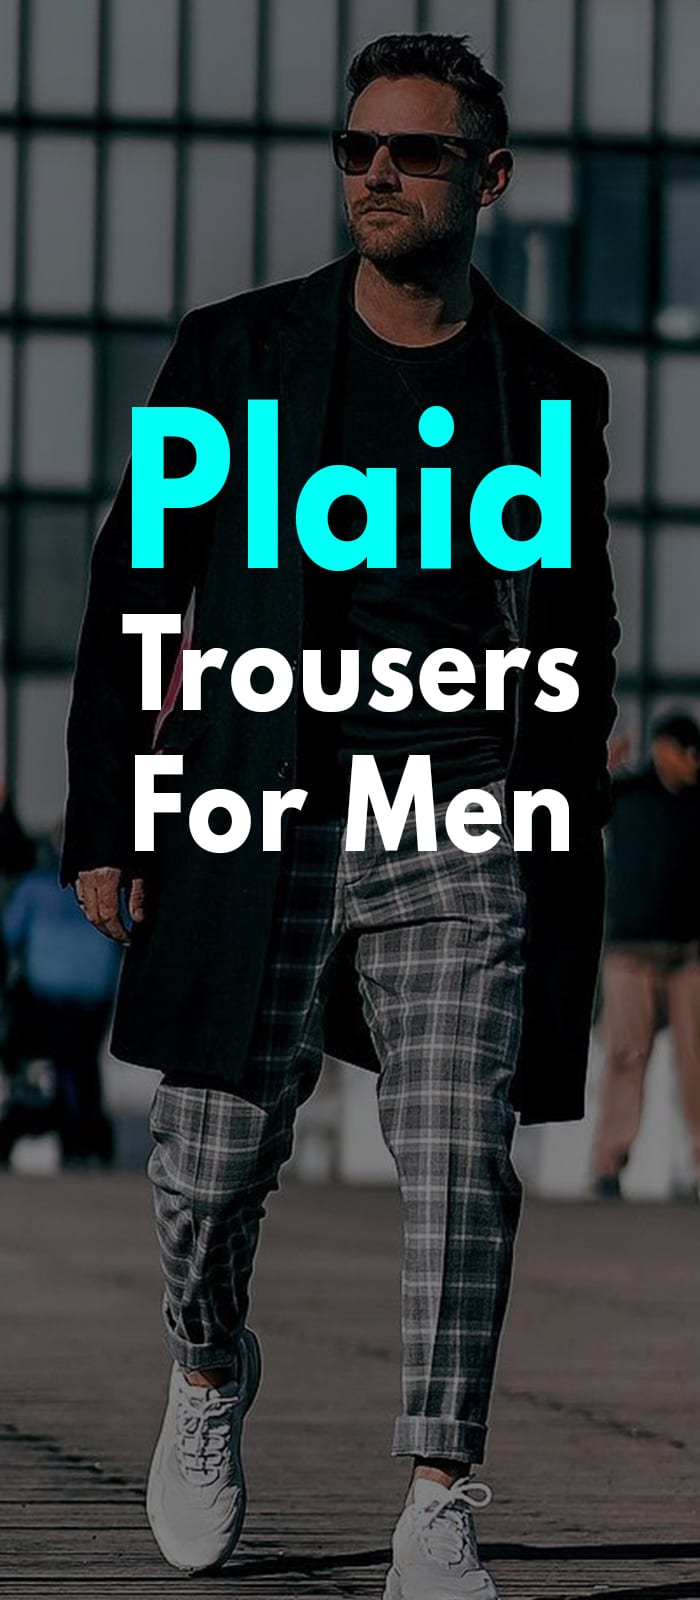 Grey plaid pant and Black overcoat outfit for men to try